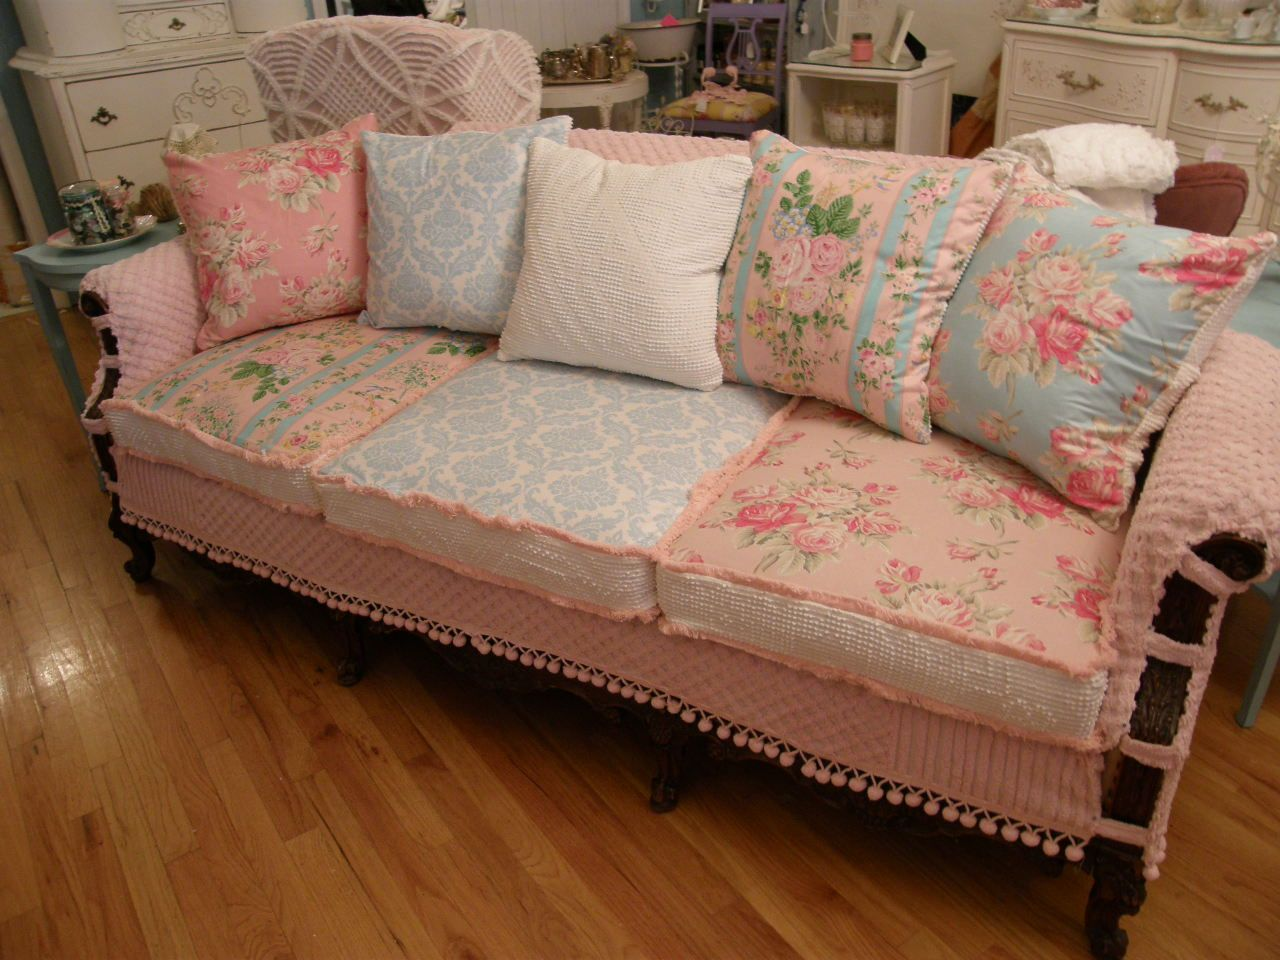 Pink Victorian Chenille Sofa Vintage Pink Bedspread Shabby Chic